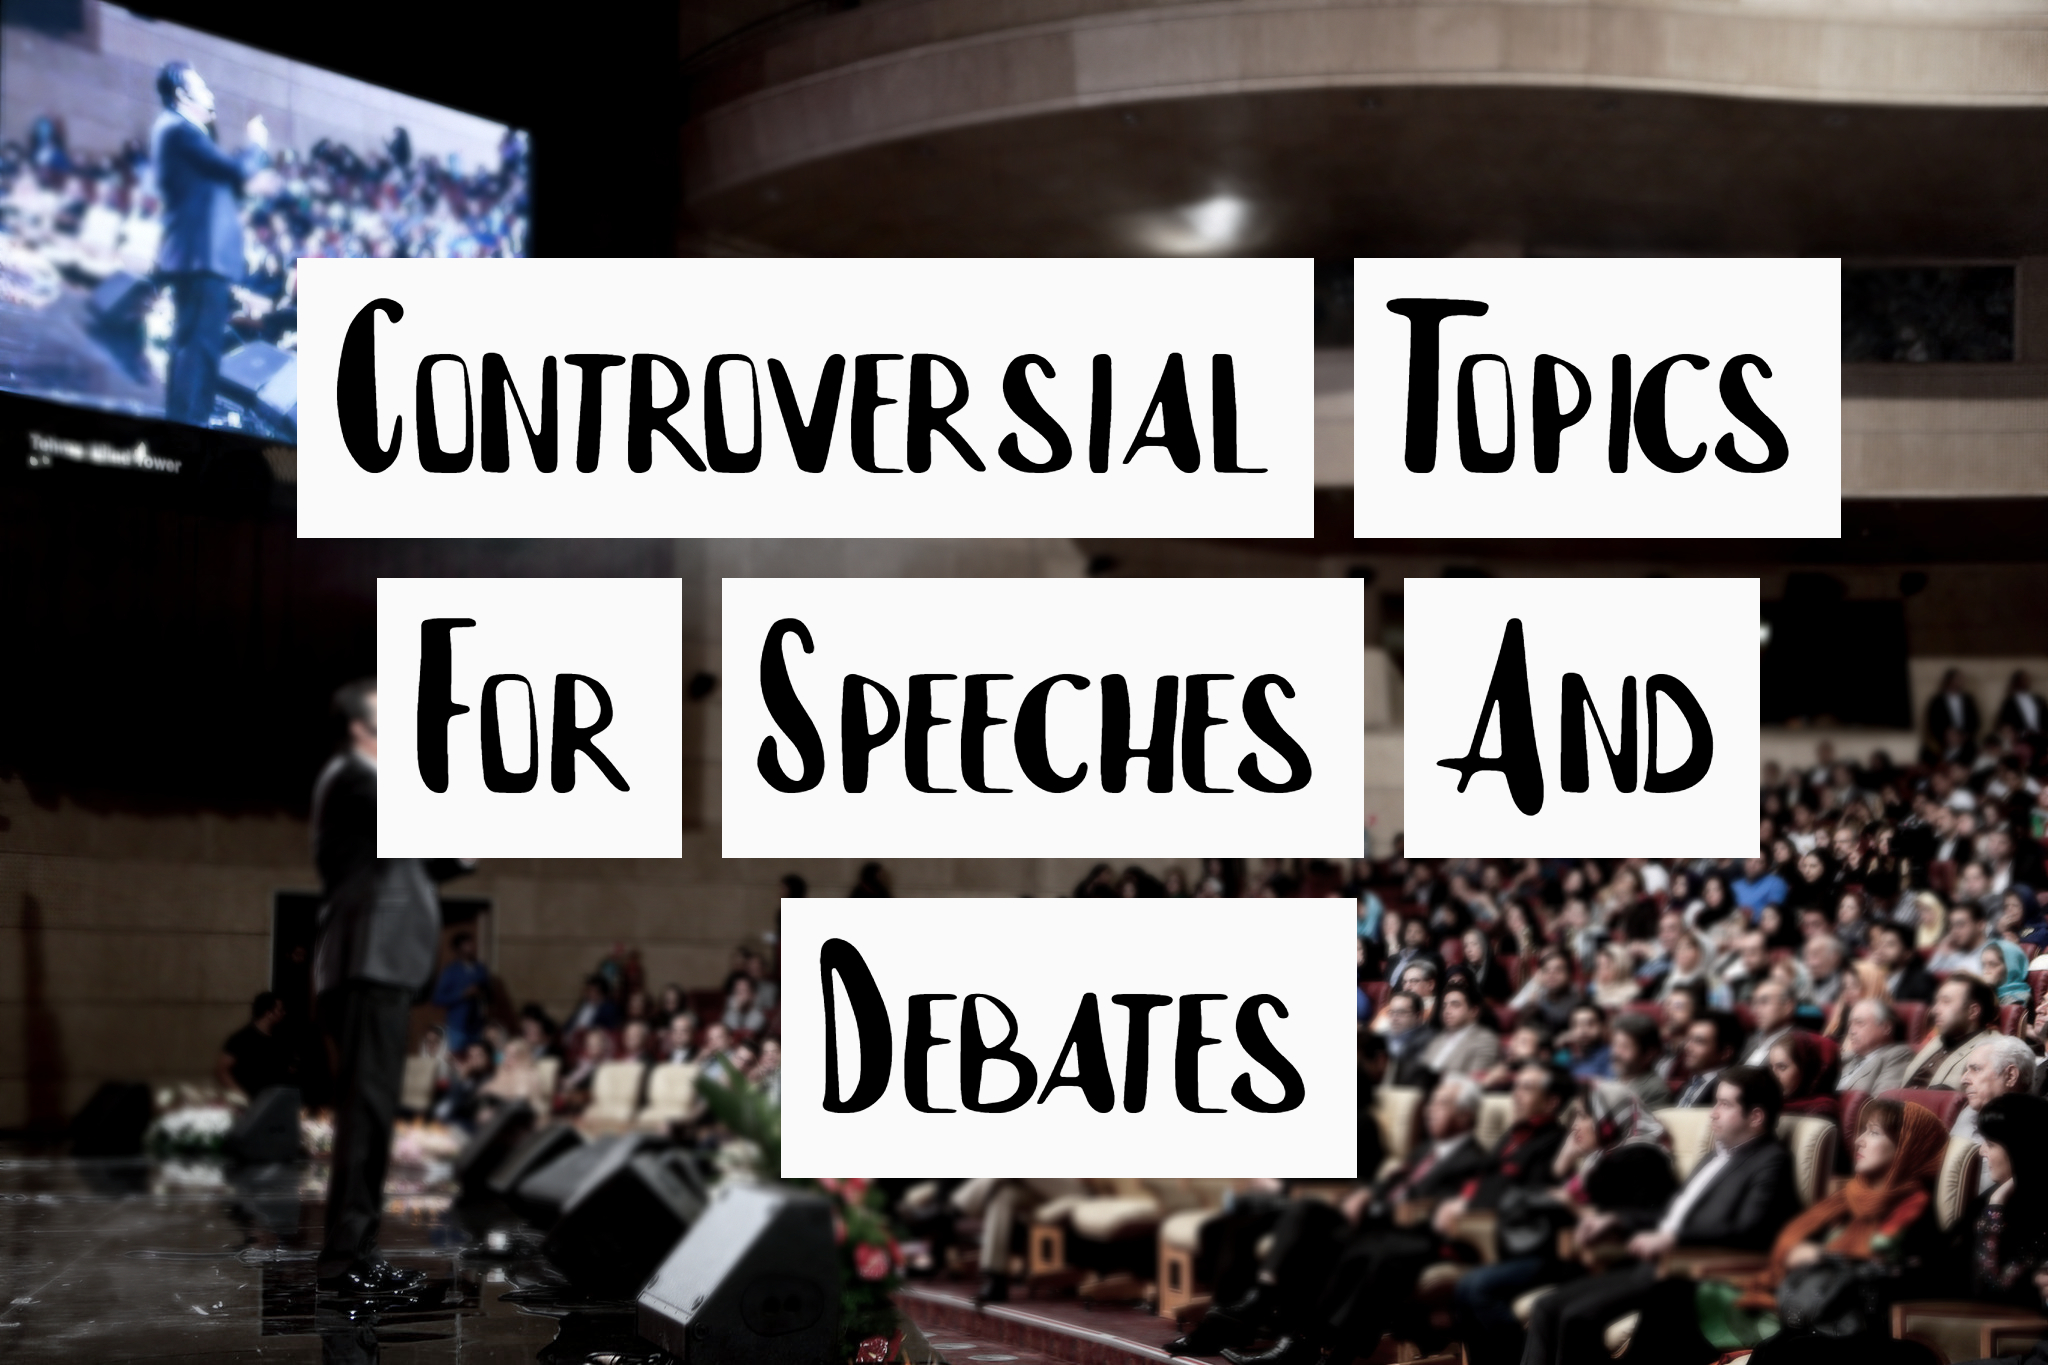 Controversial Topics For Speeches And Debates